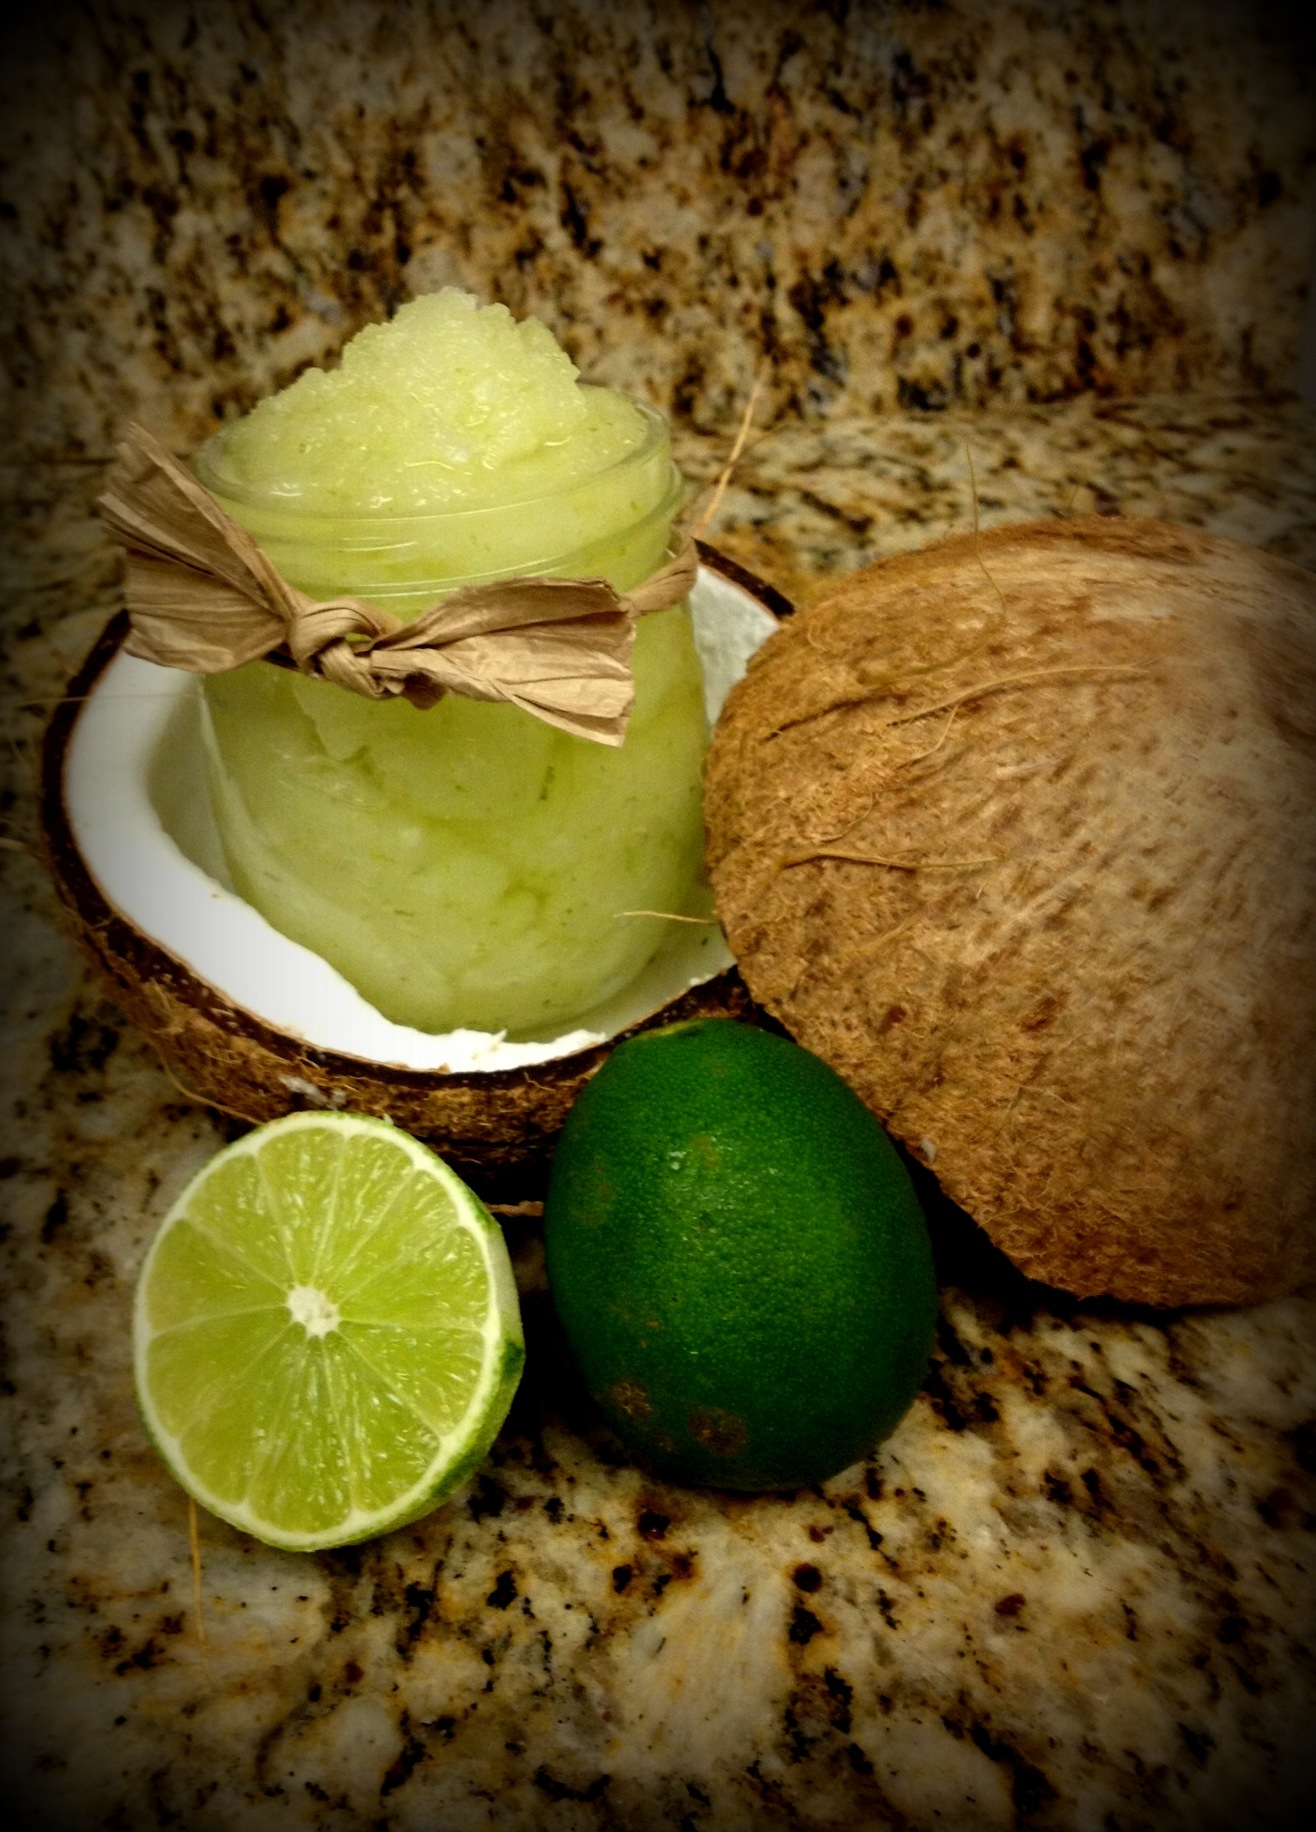 Jar, coconut, and limes